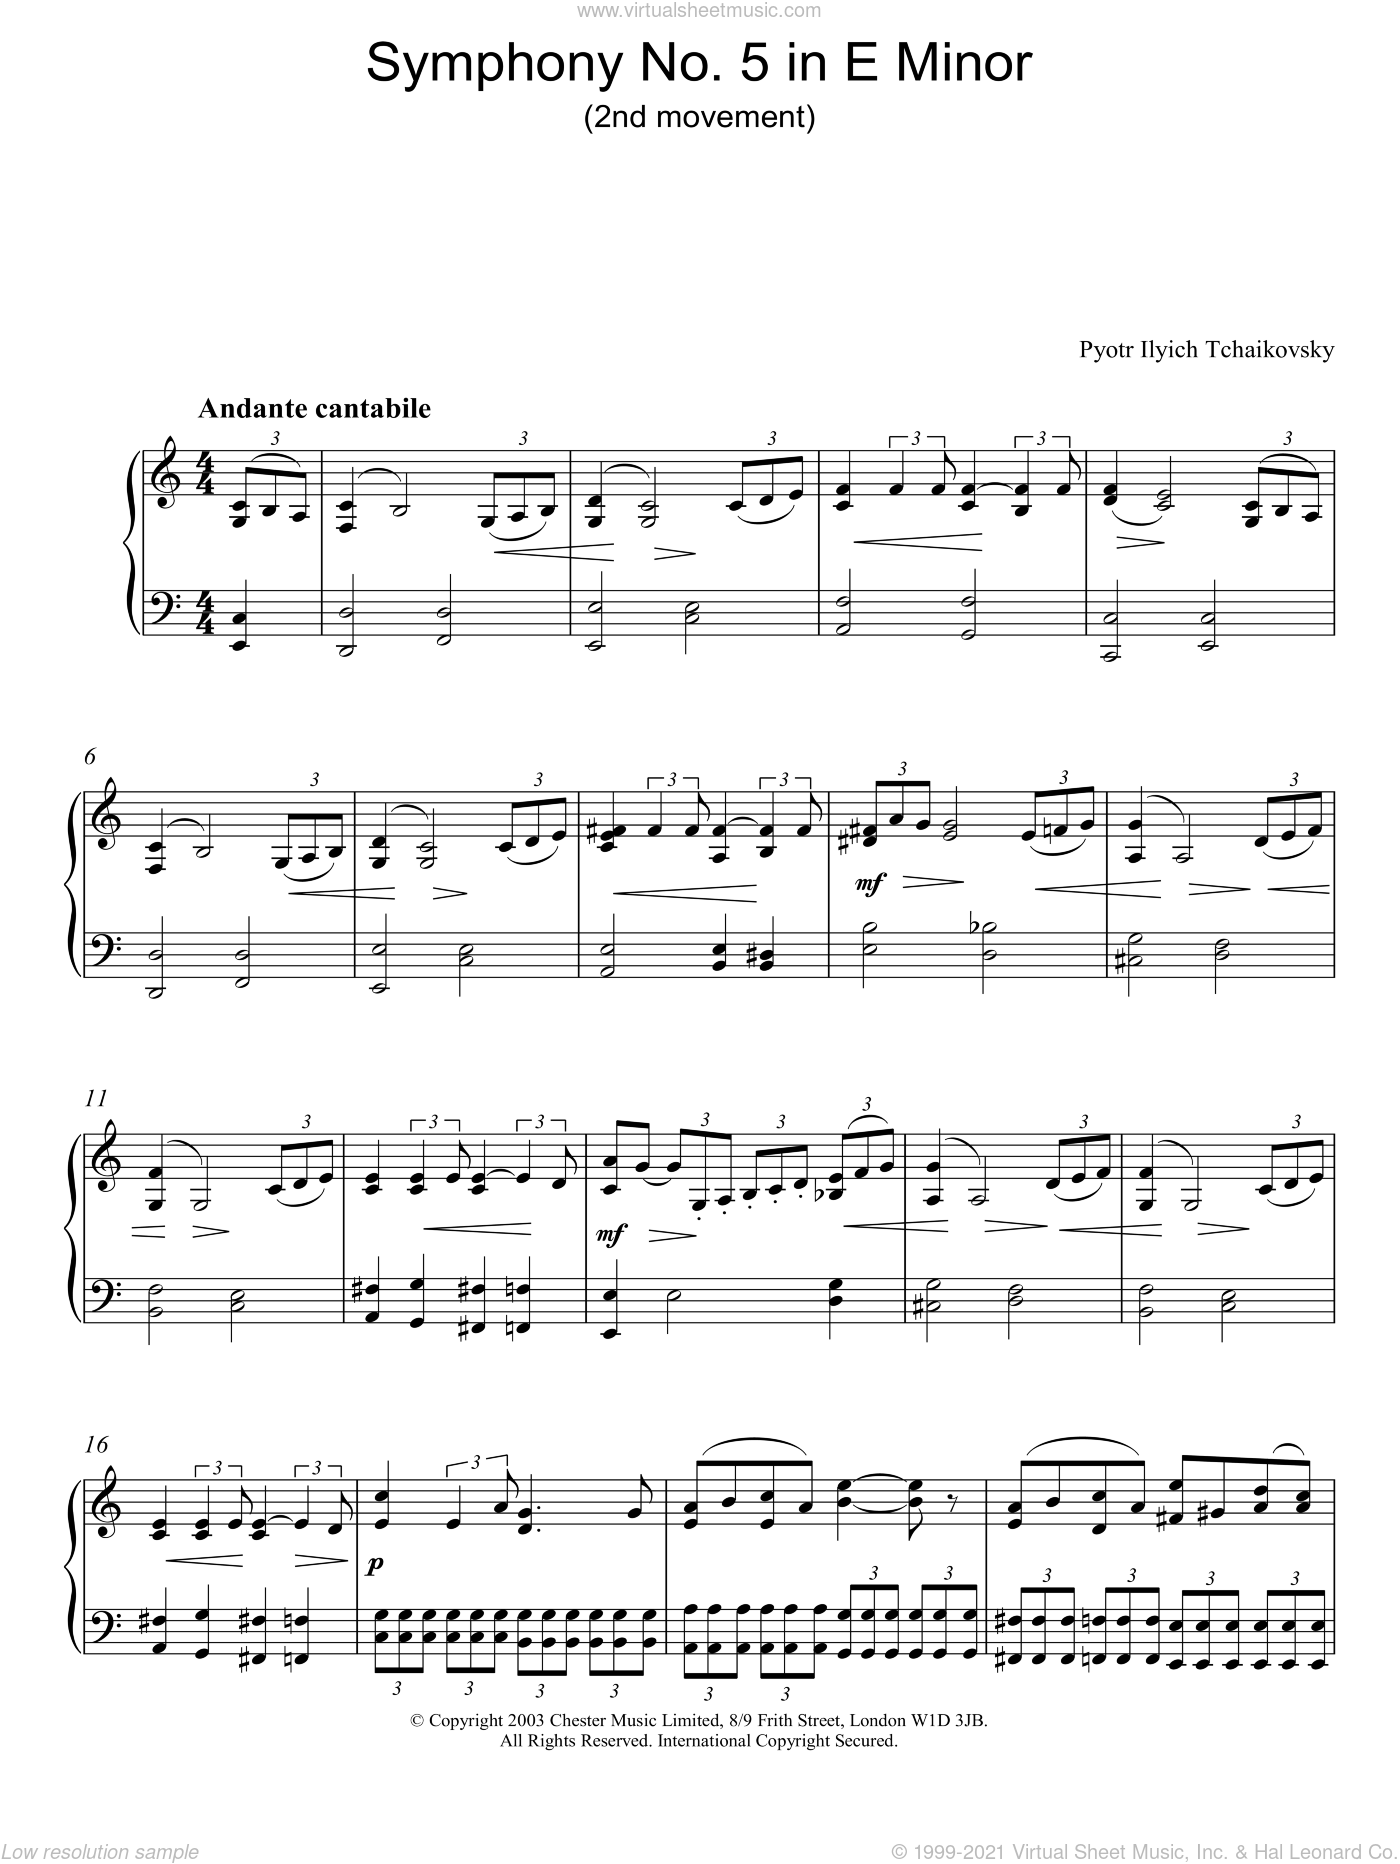 Symphony No. 5 in E Minor (2nd movement) sheet music for piano solo by Pyotr Ilyich Tchaikovsky, classical score, intermediate. Score Image Preview.